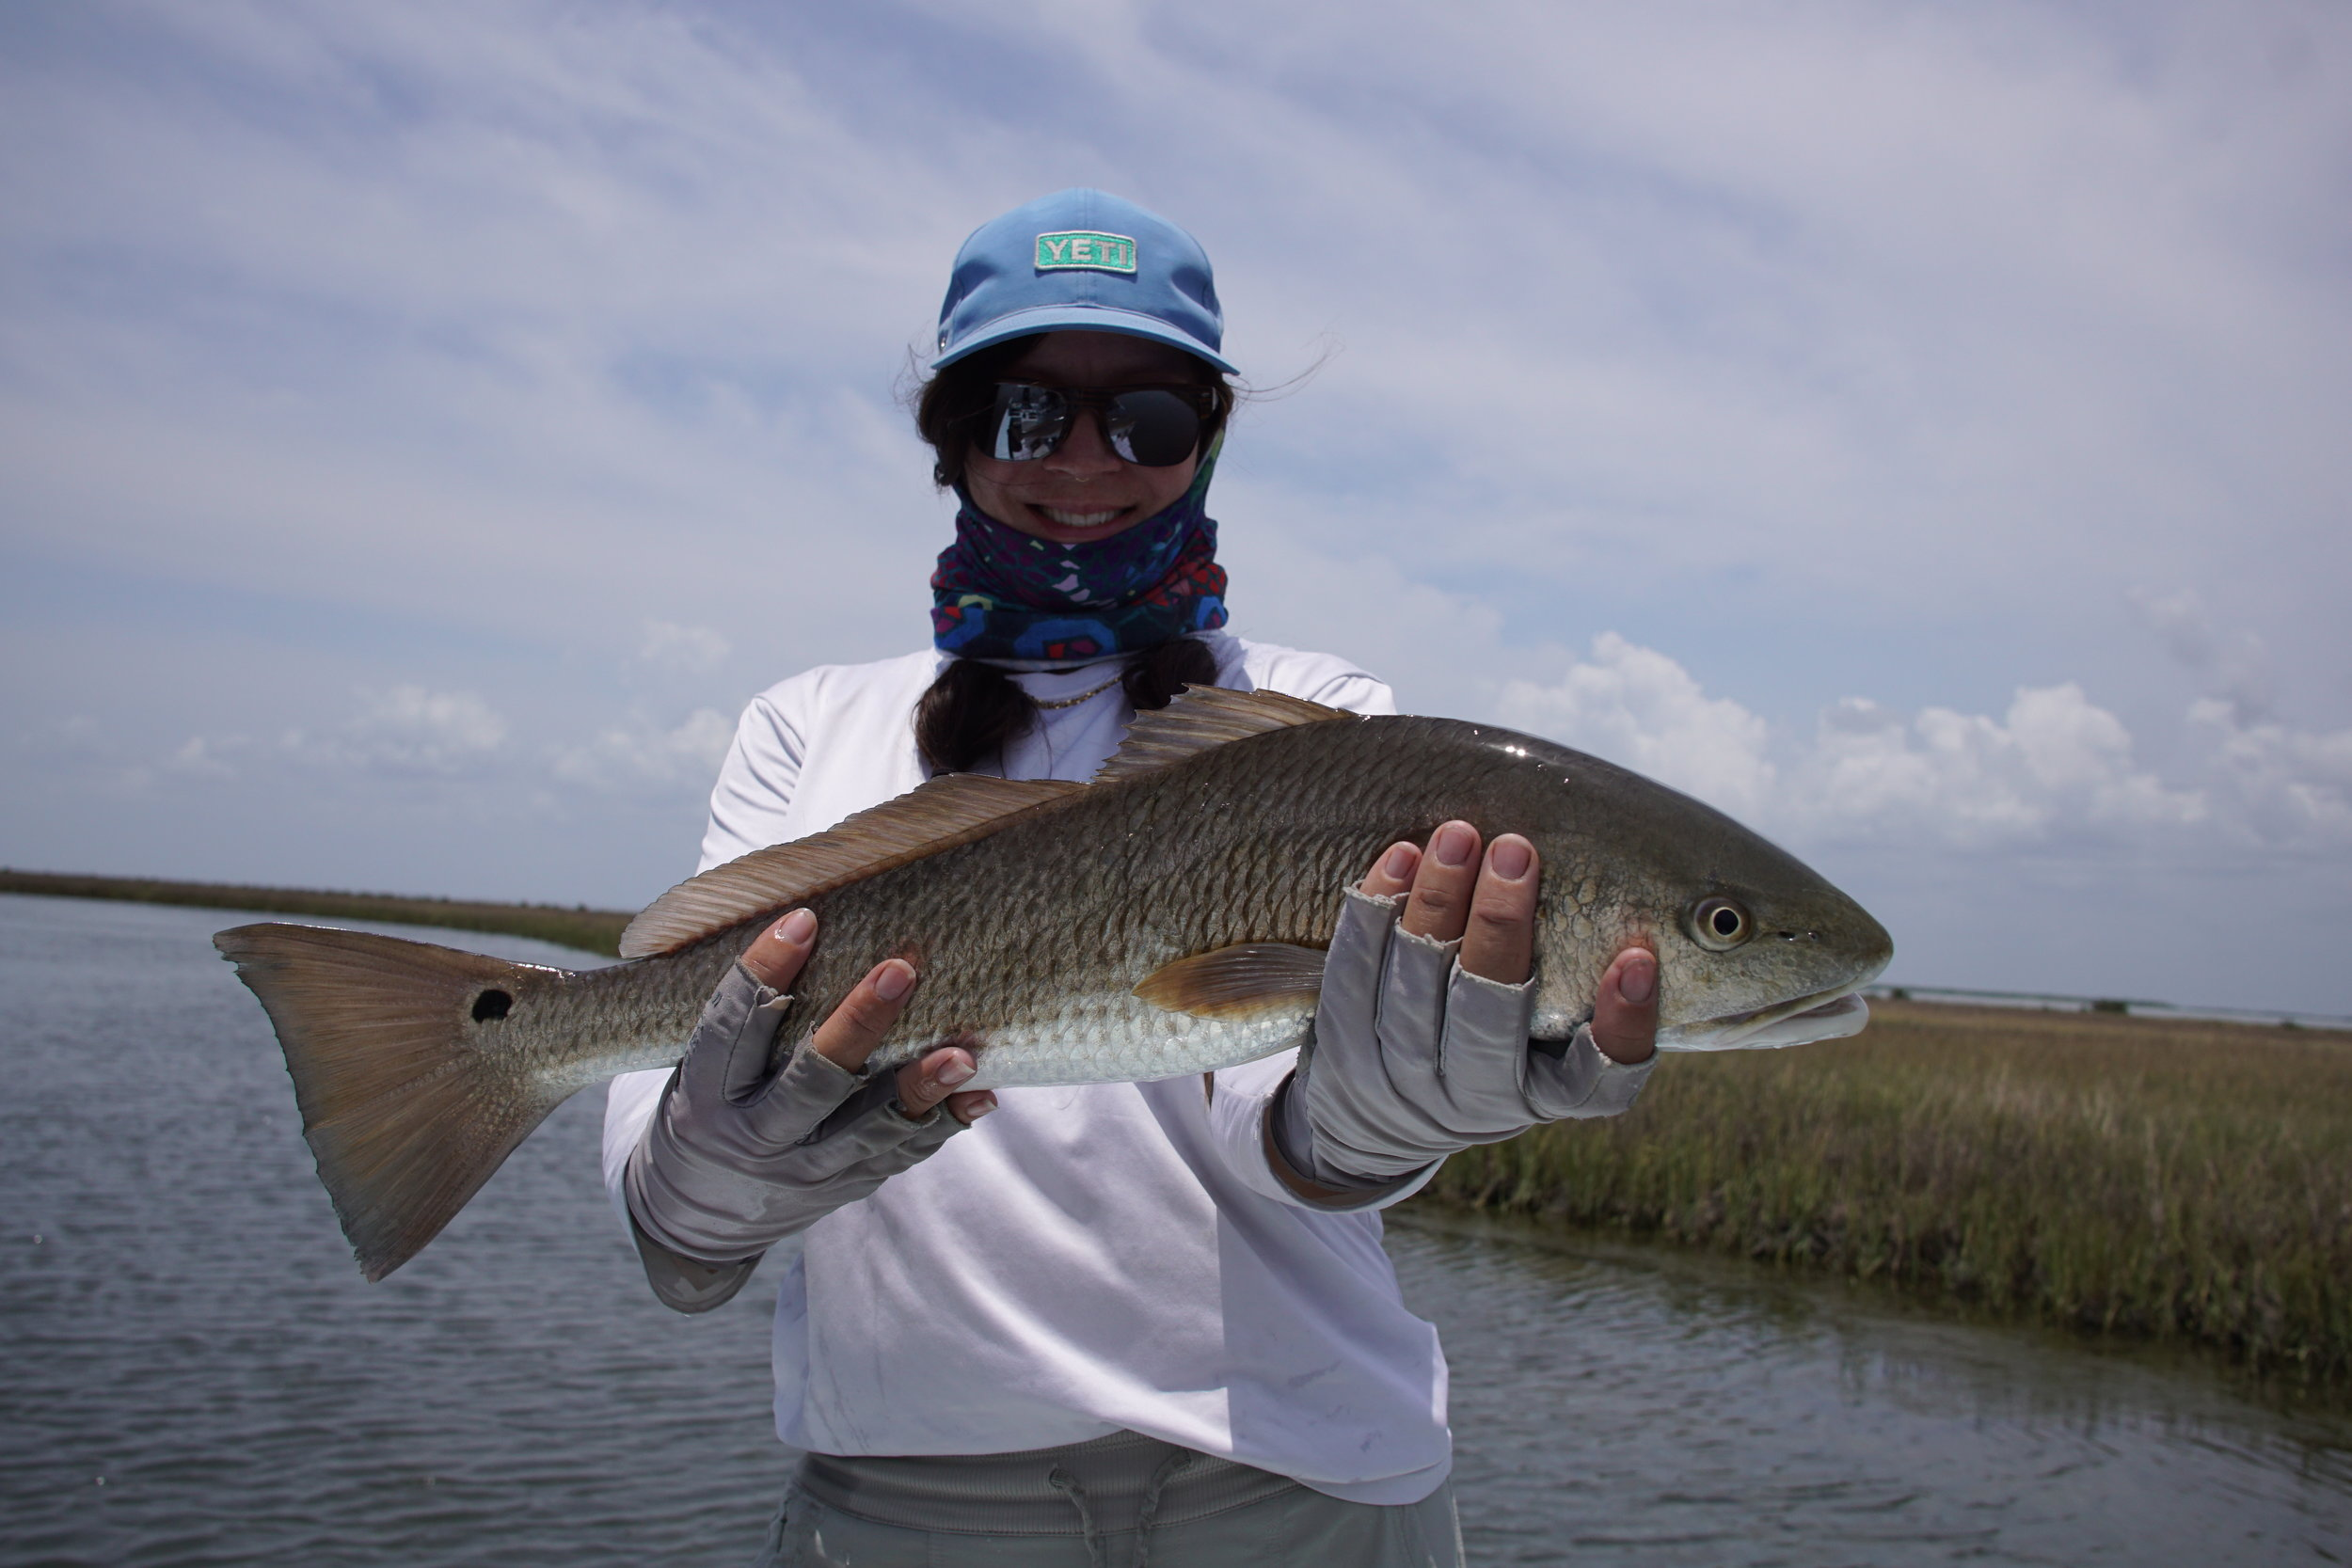 Lenee With a nice redfish